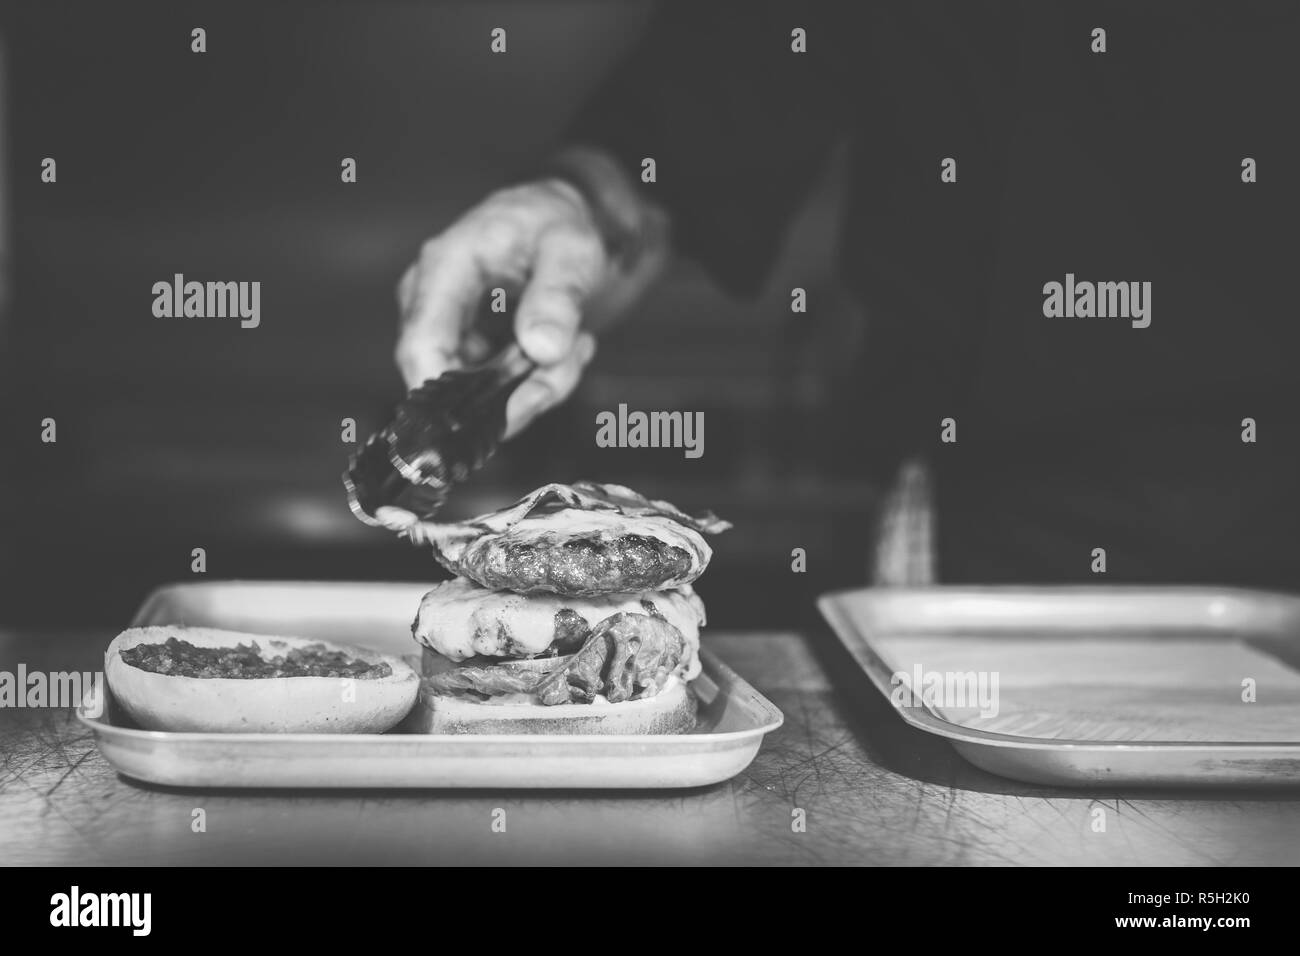 Burger being topped with bacon in black and white - Stock Image